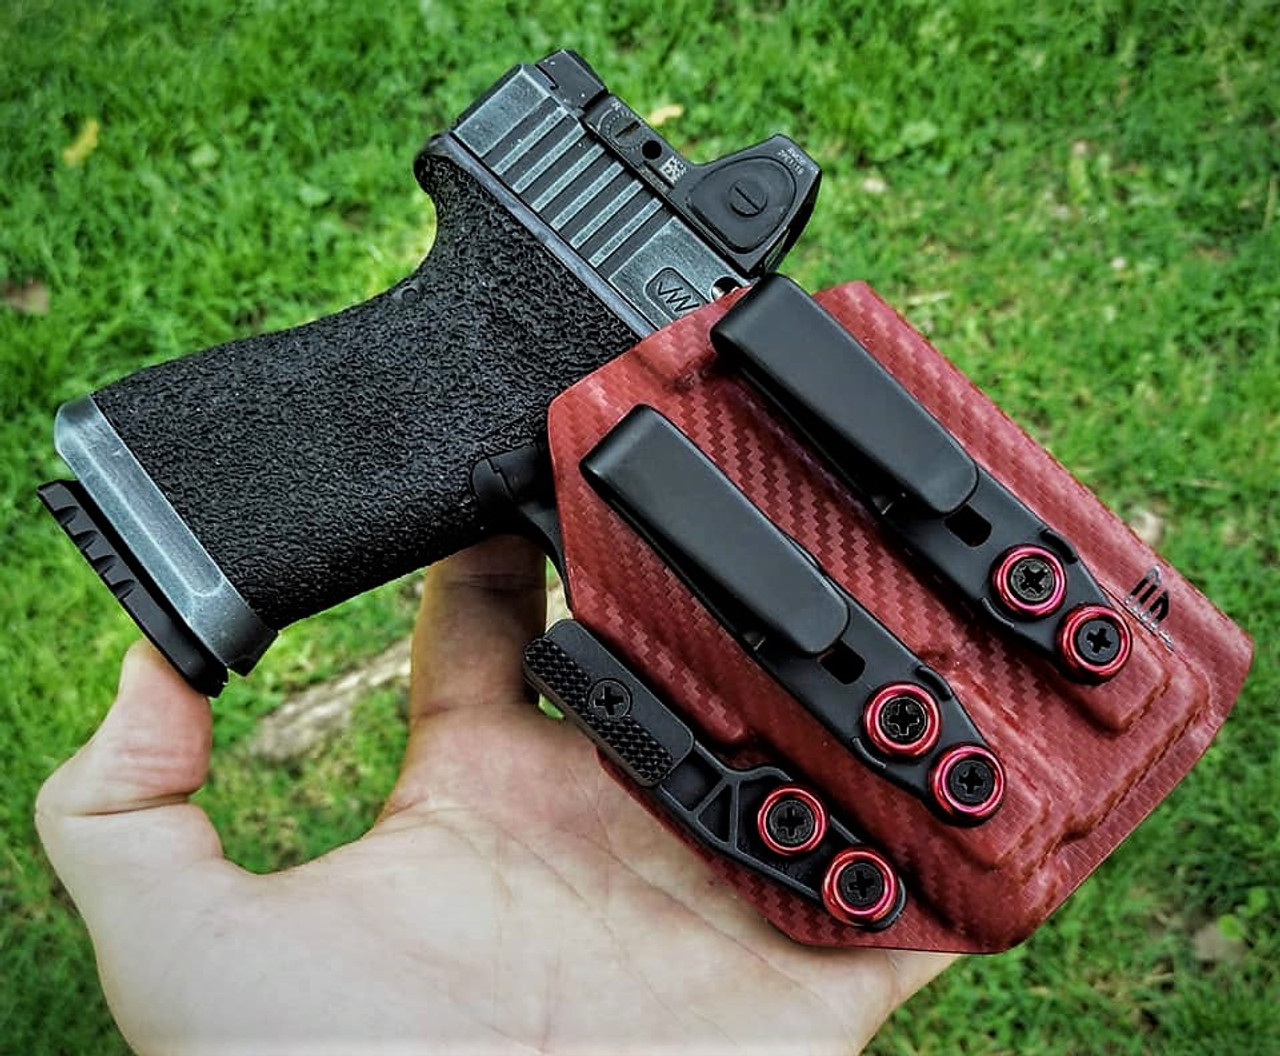 Glock 19 Inforce APLc Holster